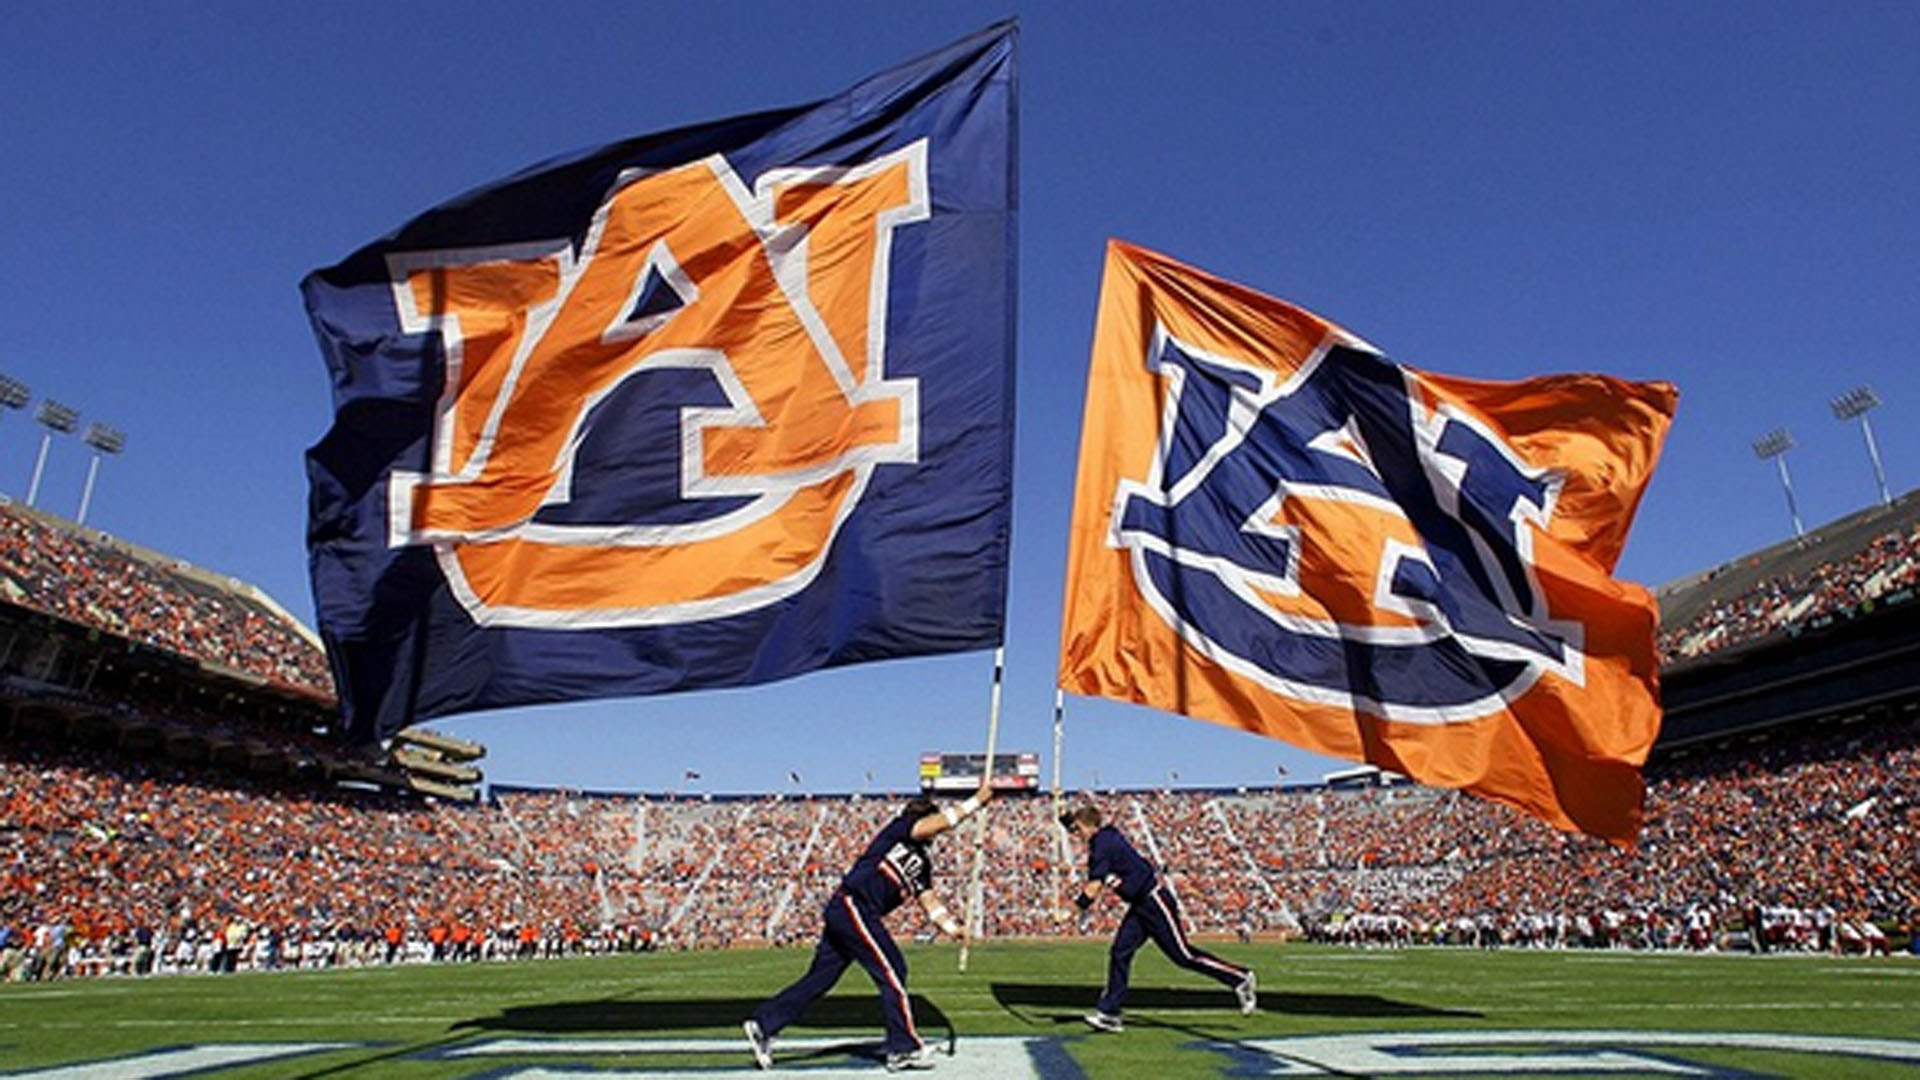 auburn-football-021715-getty-ftr